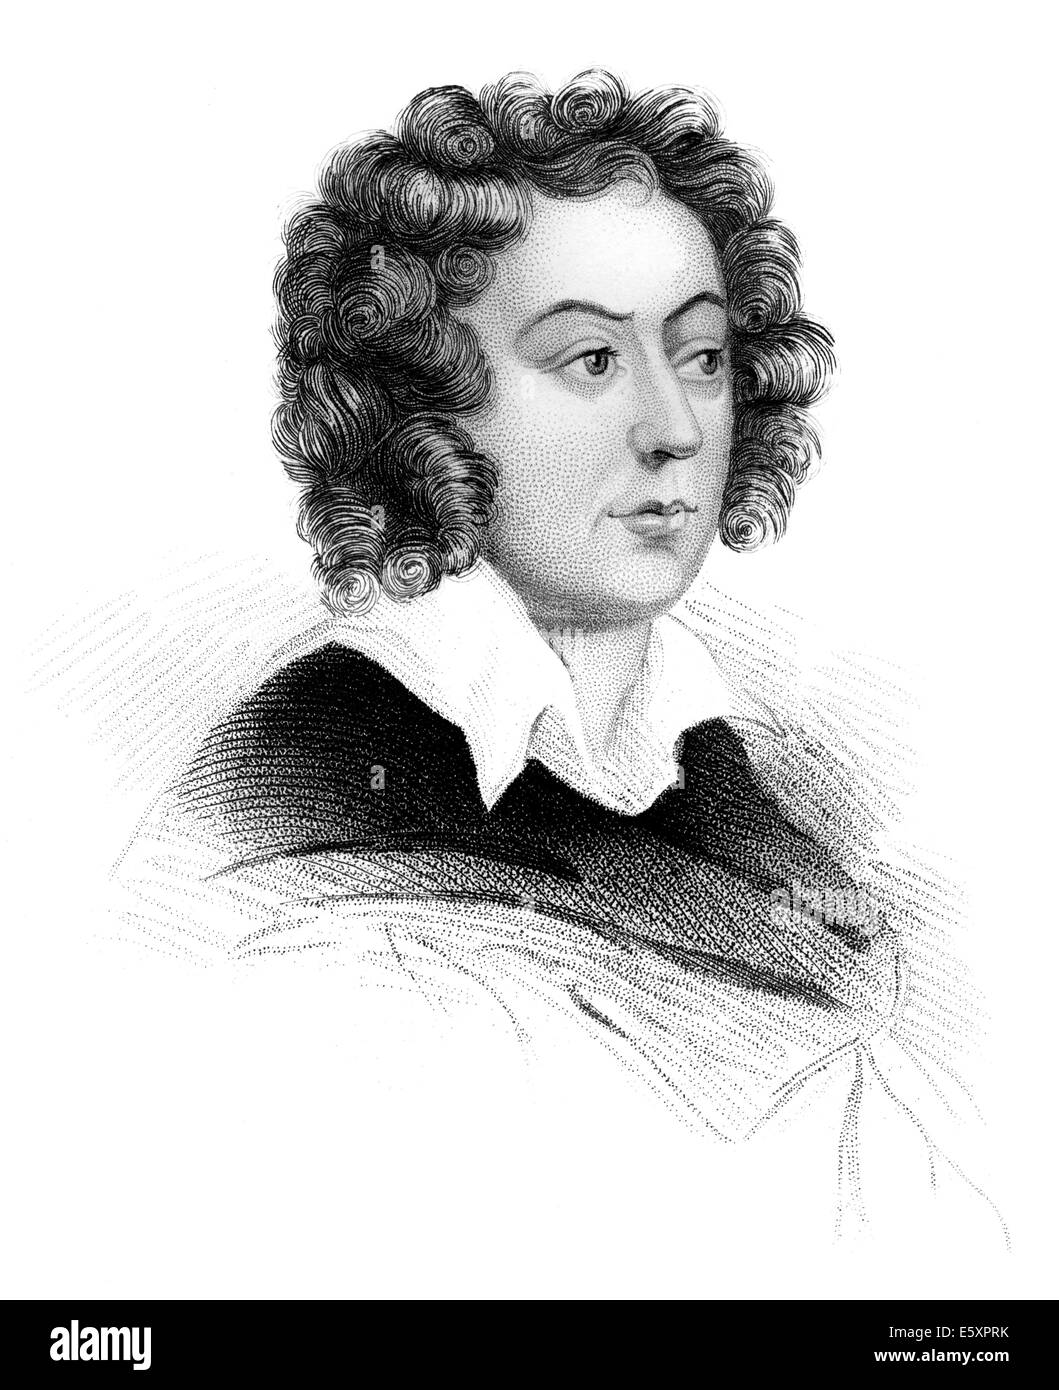 Henry Purcell, 1659-1695, an English composer, - Stock Image